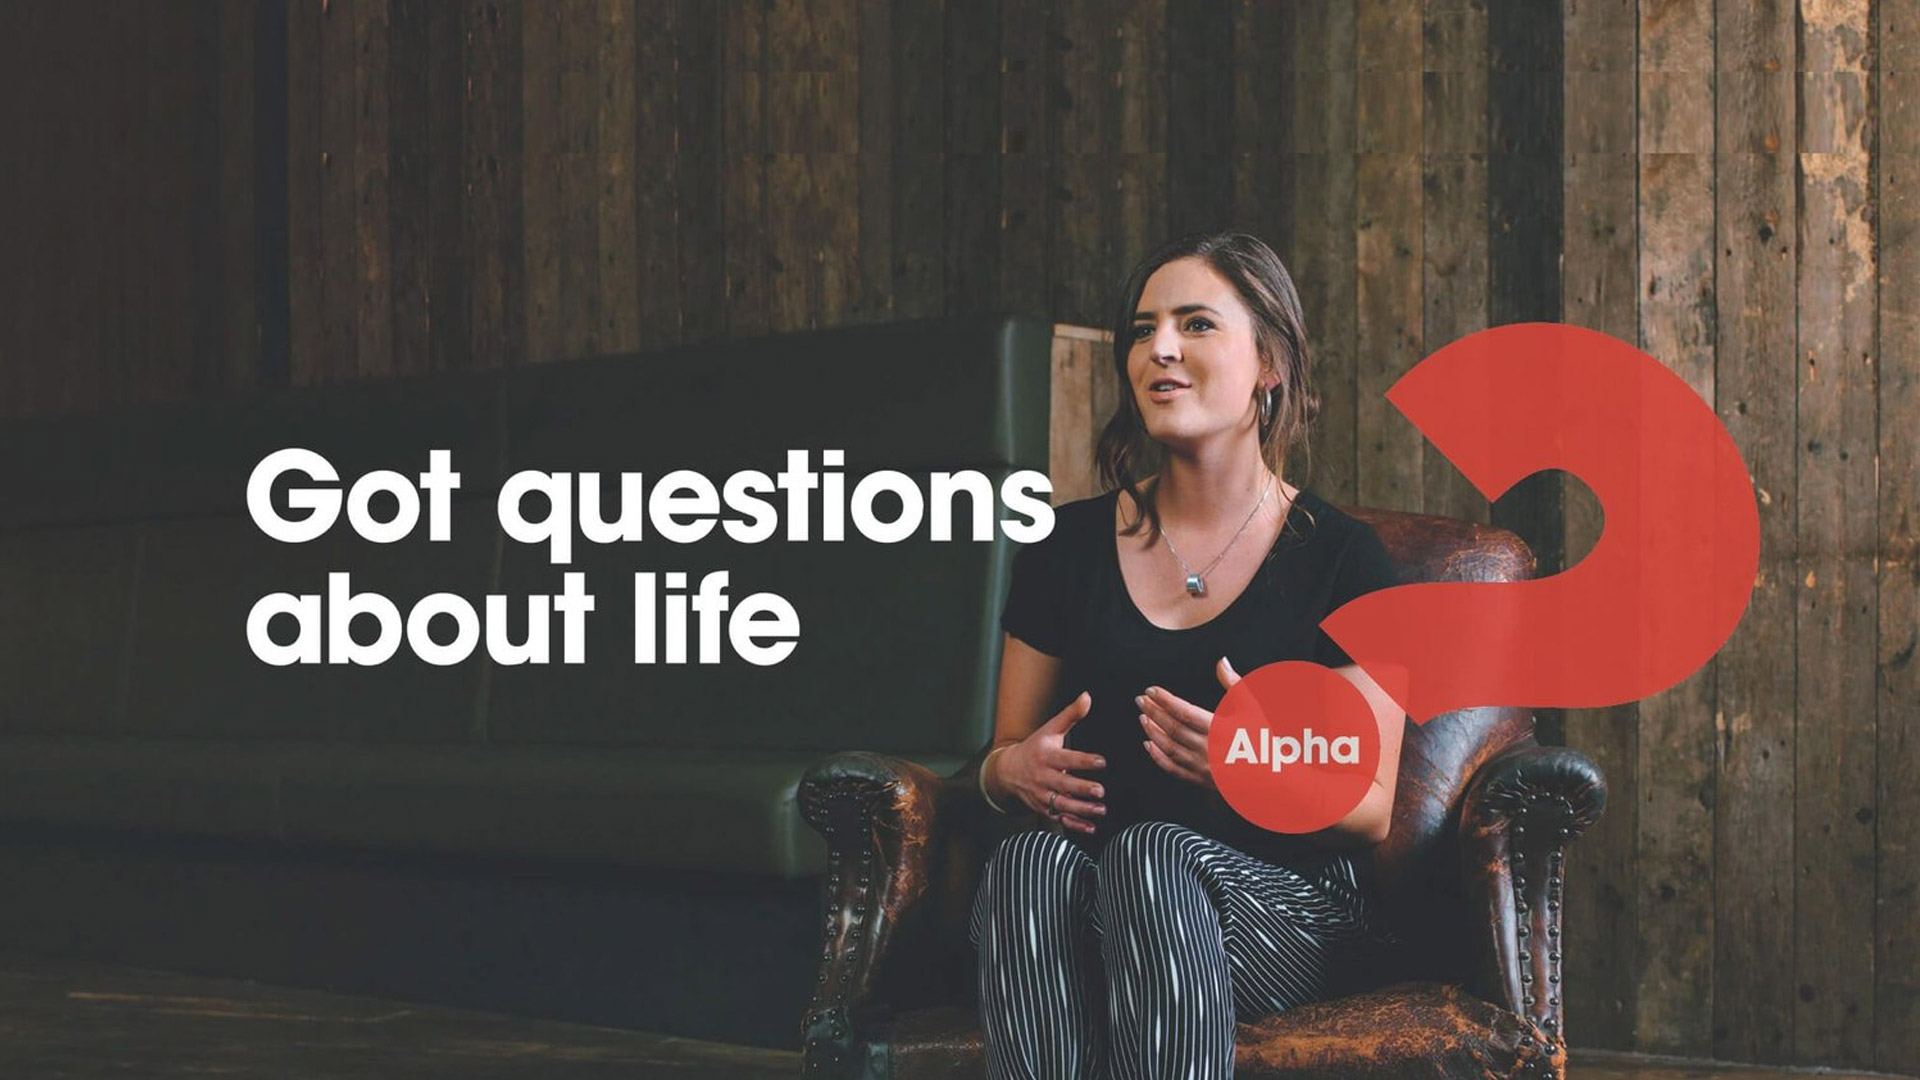 Alpha course web 1920x1080